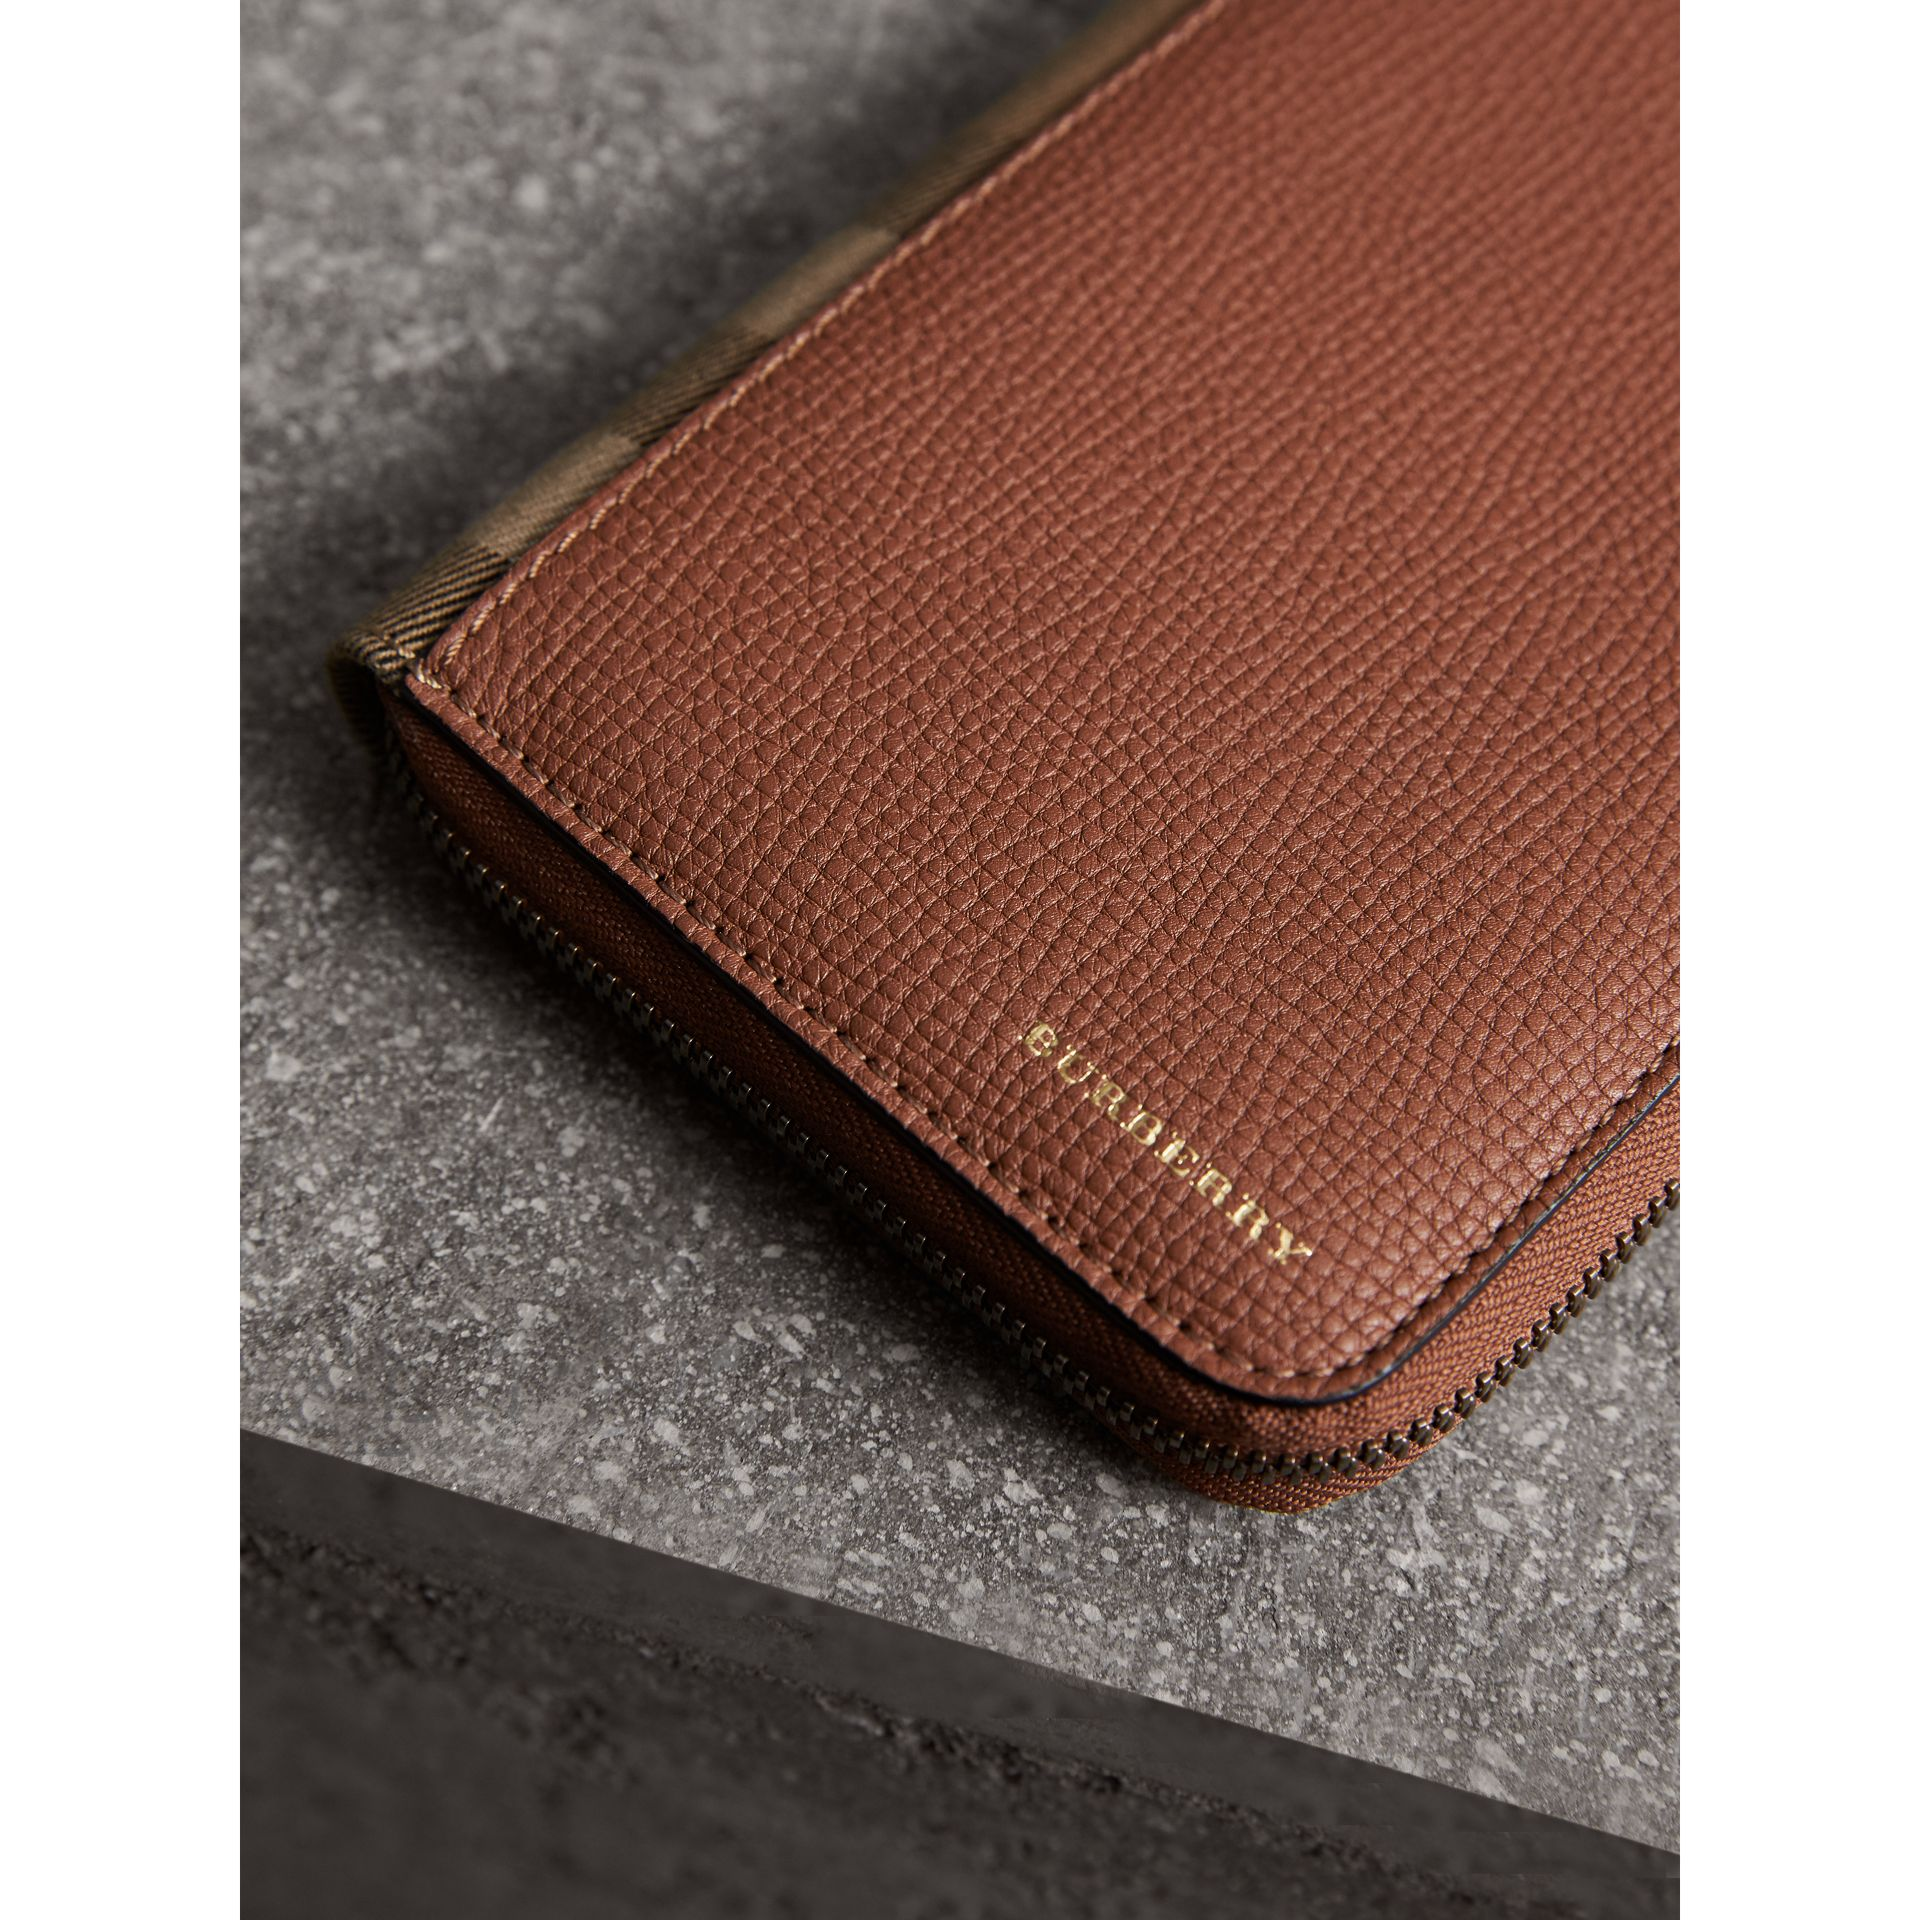 House Check and Grainy Leather Ziparound Wallet in Chestnut Brown - Men | Burberry Australia - gallery image 2